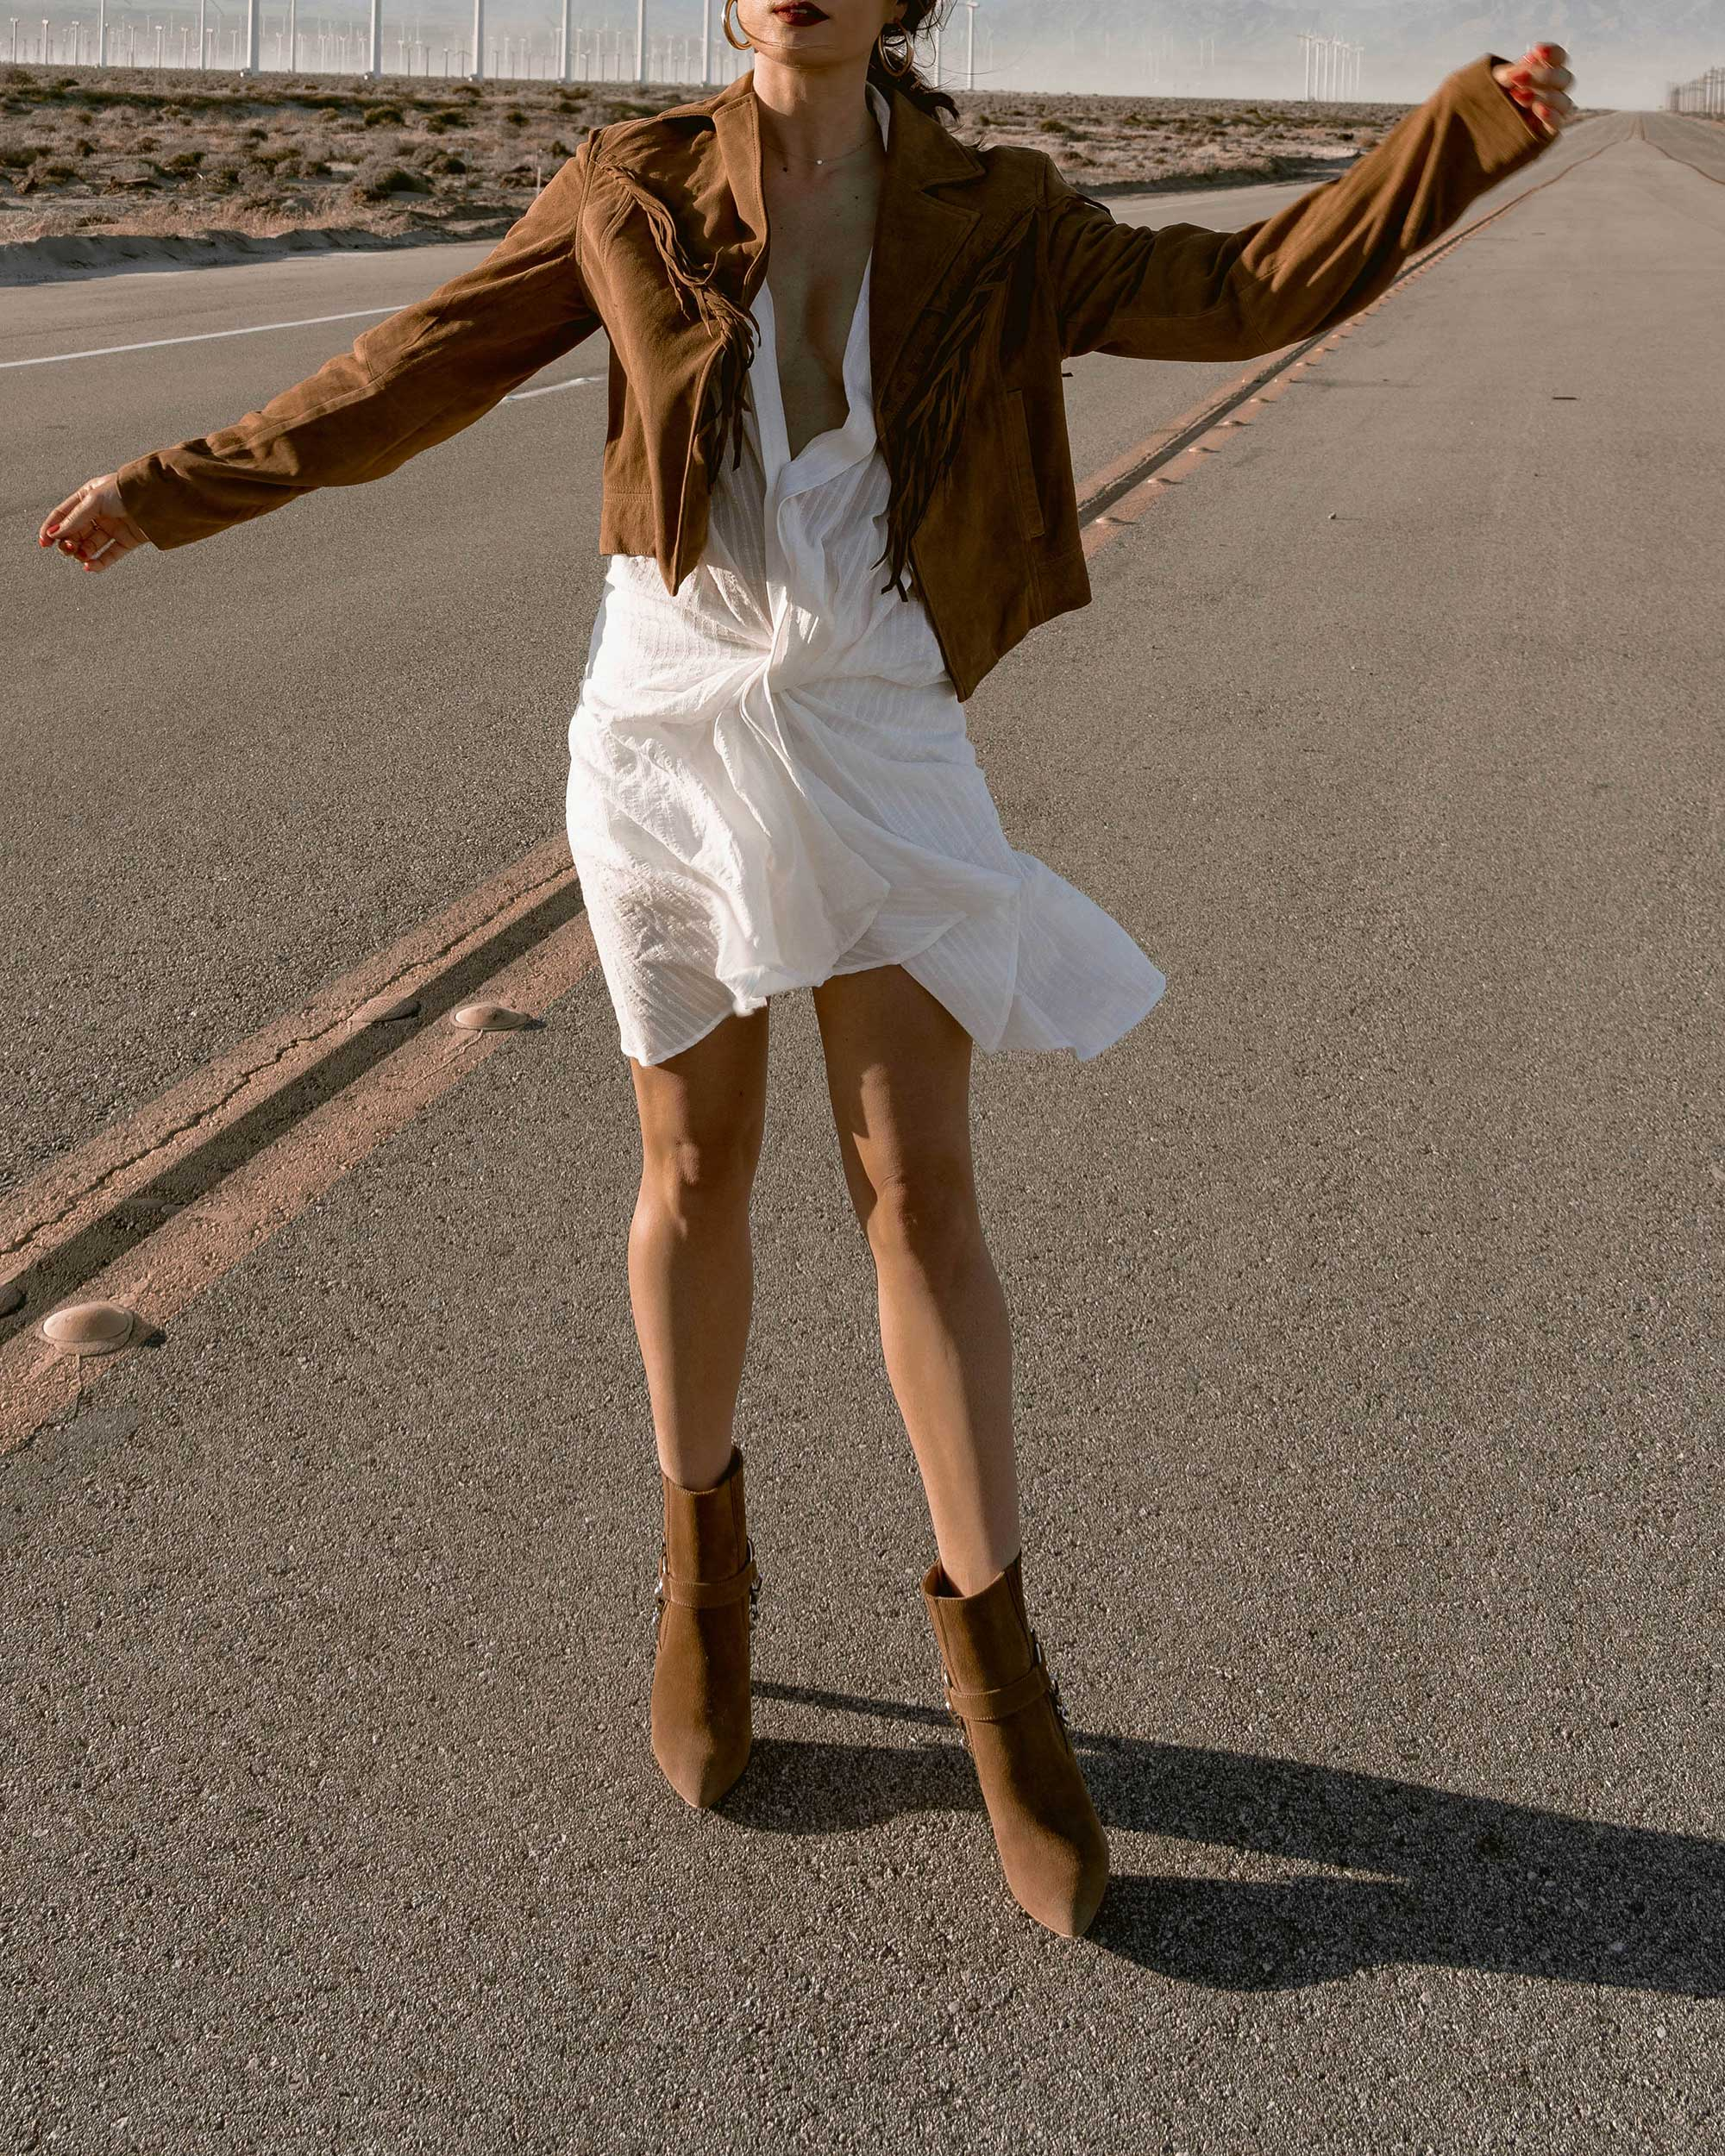 Sarah-Butler-of-Sarah-Styles-Seattle-wears-Jacquemus-Alassio-draped-white-cotton-mini-dress,-Paige-Darlene-Fringed-Suede-Jacket,-and-Paige-suede-western-boot-in-Palm-Springs-for-Coachella-Festival-Outfit-_-@sarahchristine8.jpg